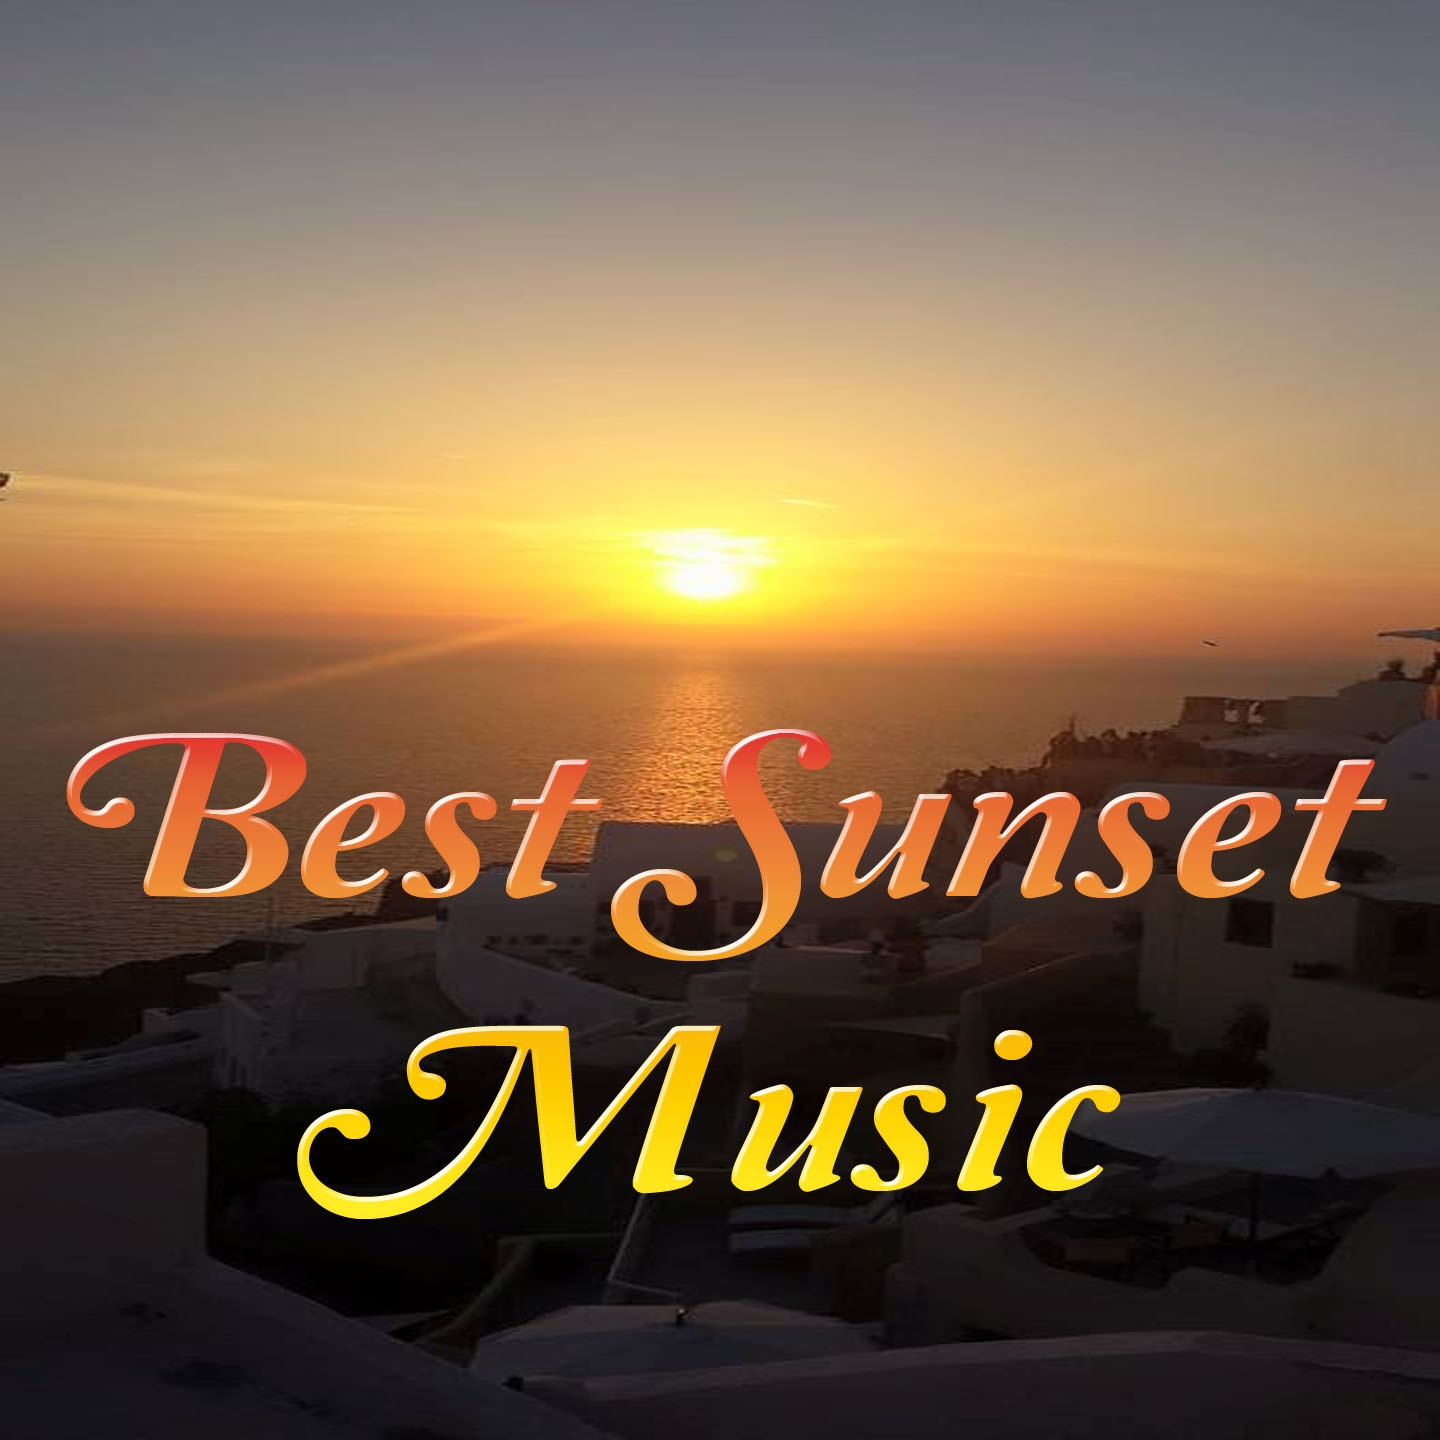 Best Sunset Music